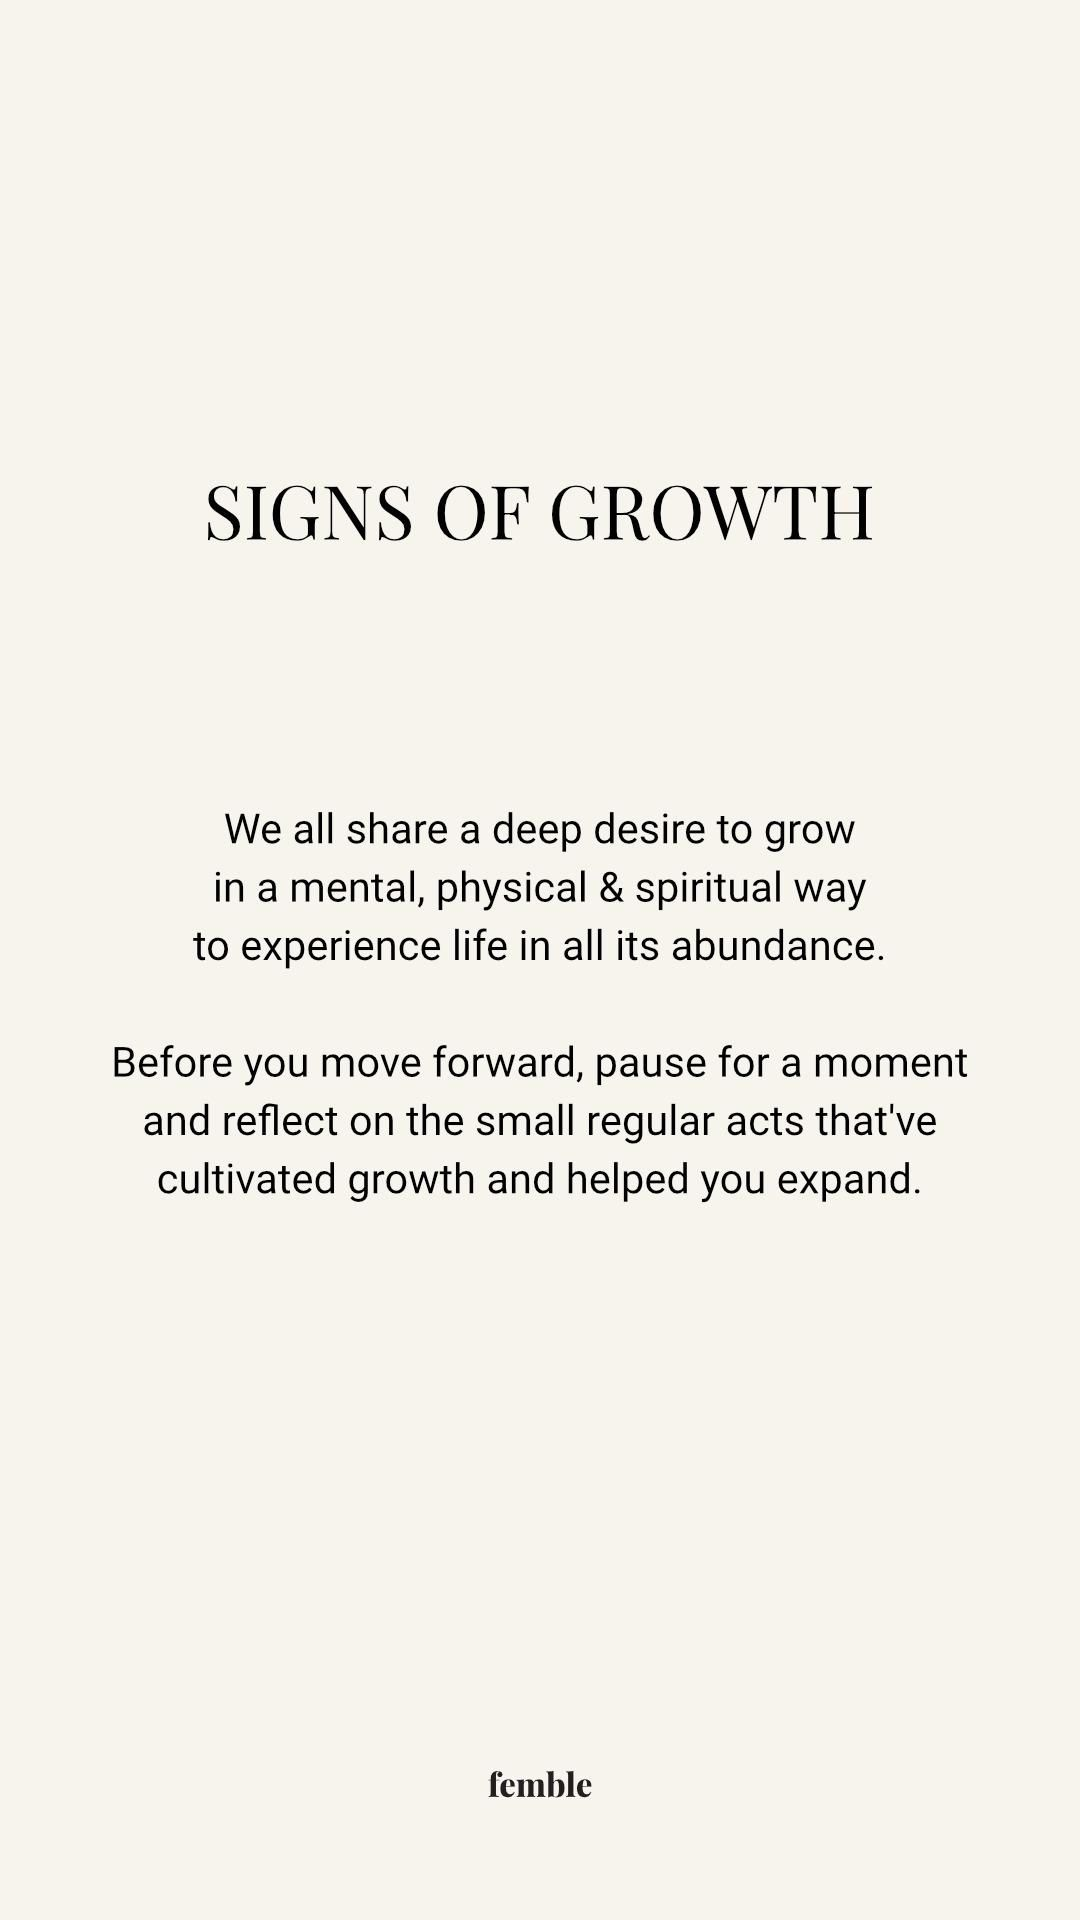 sustainable methods of personal growth